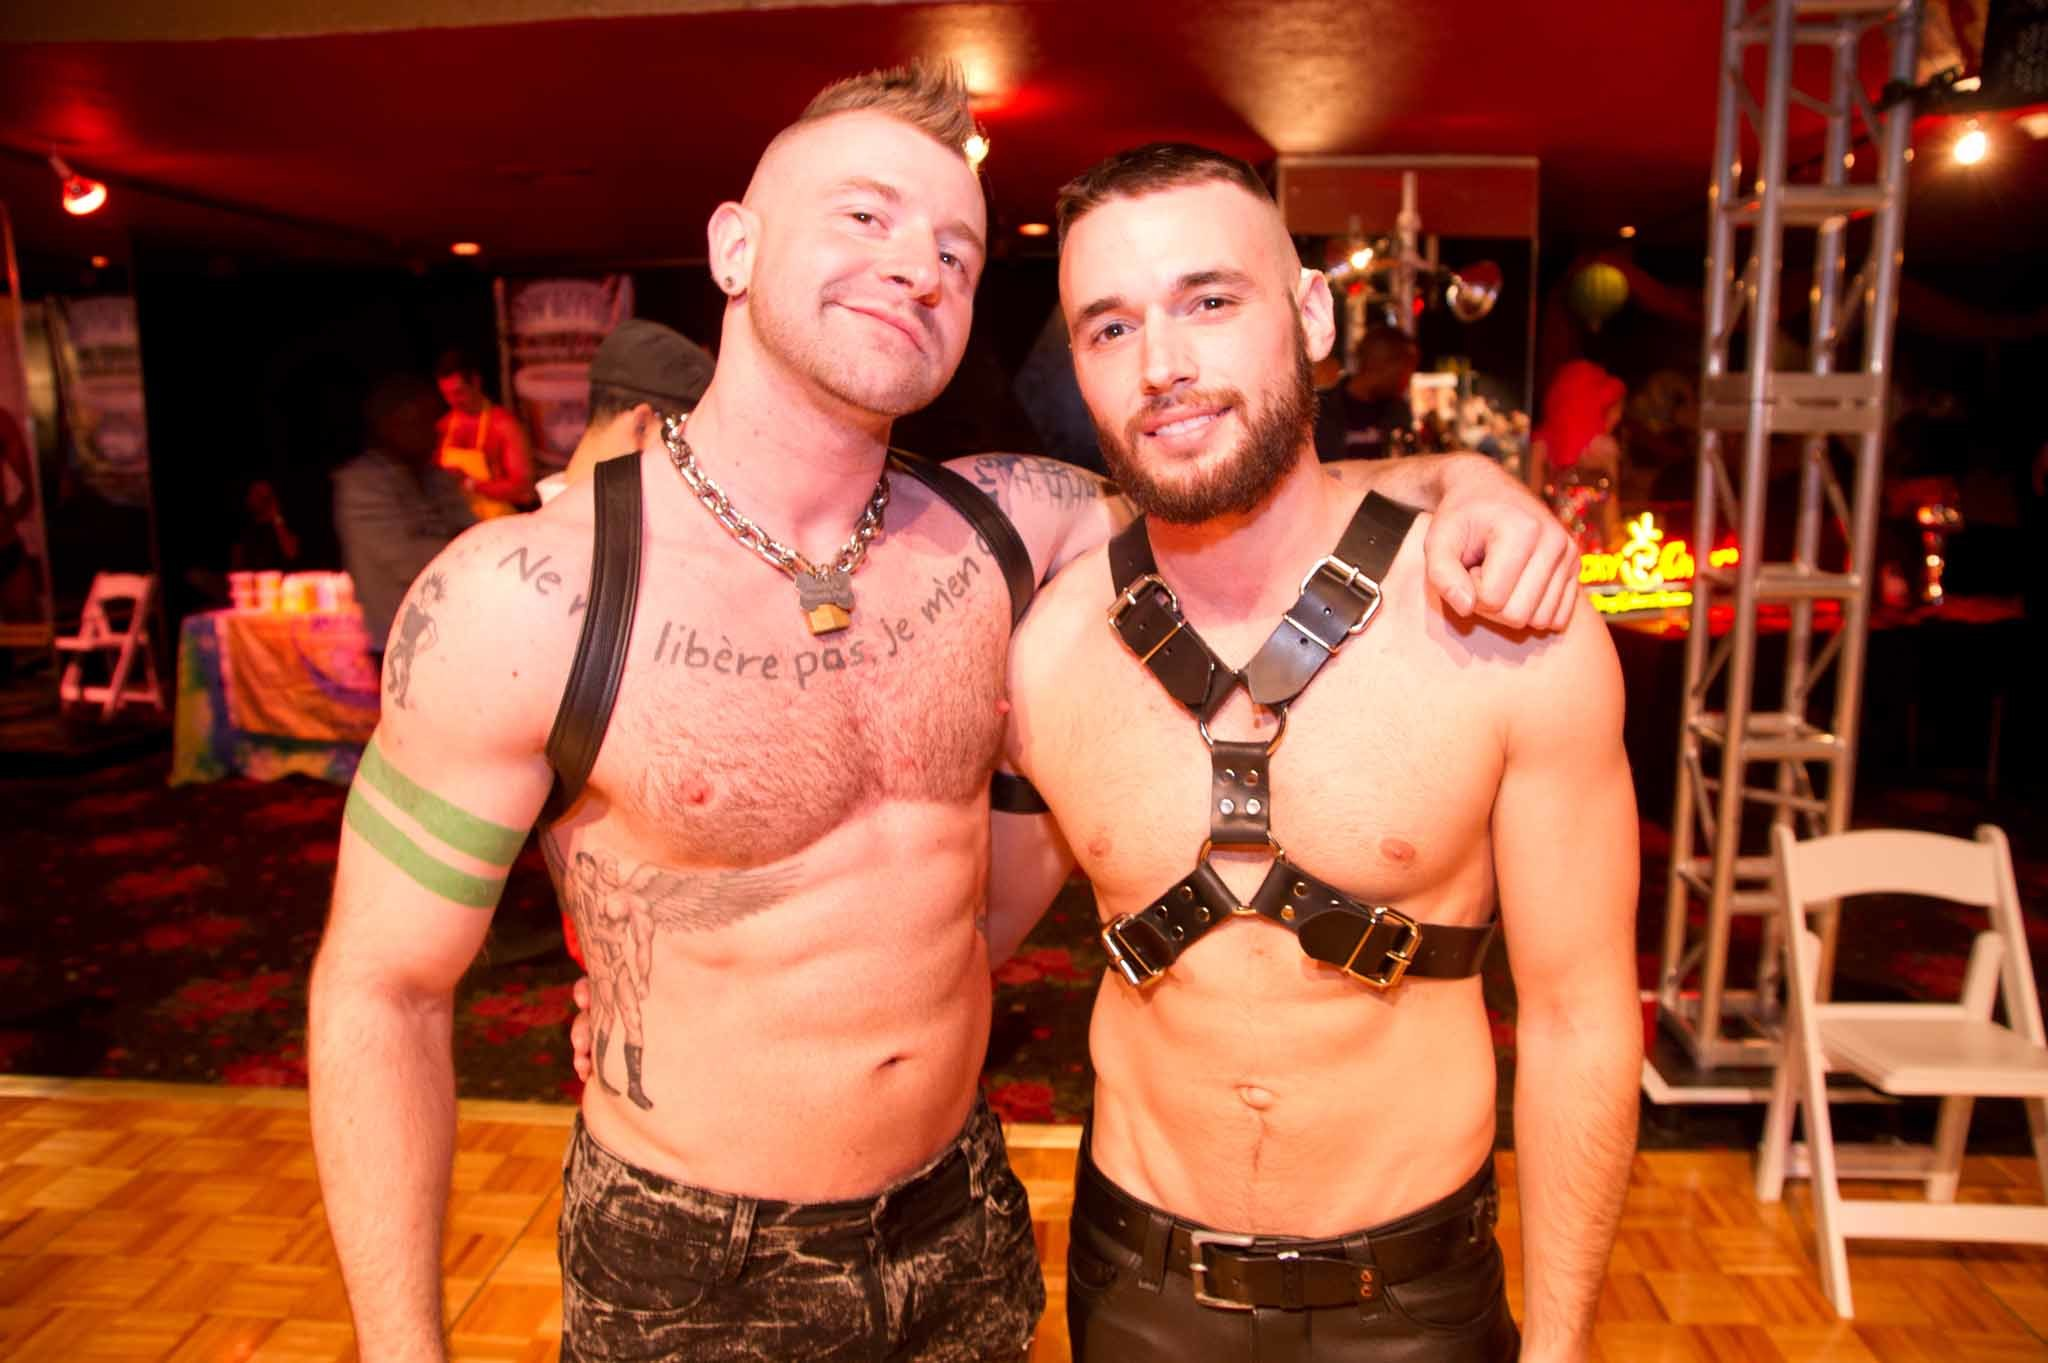 Bondage Events Nyc